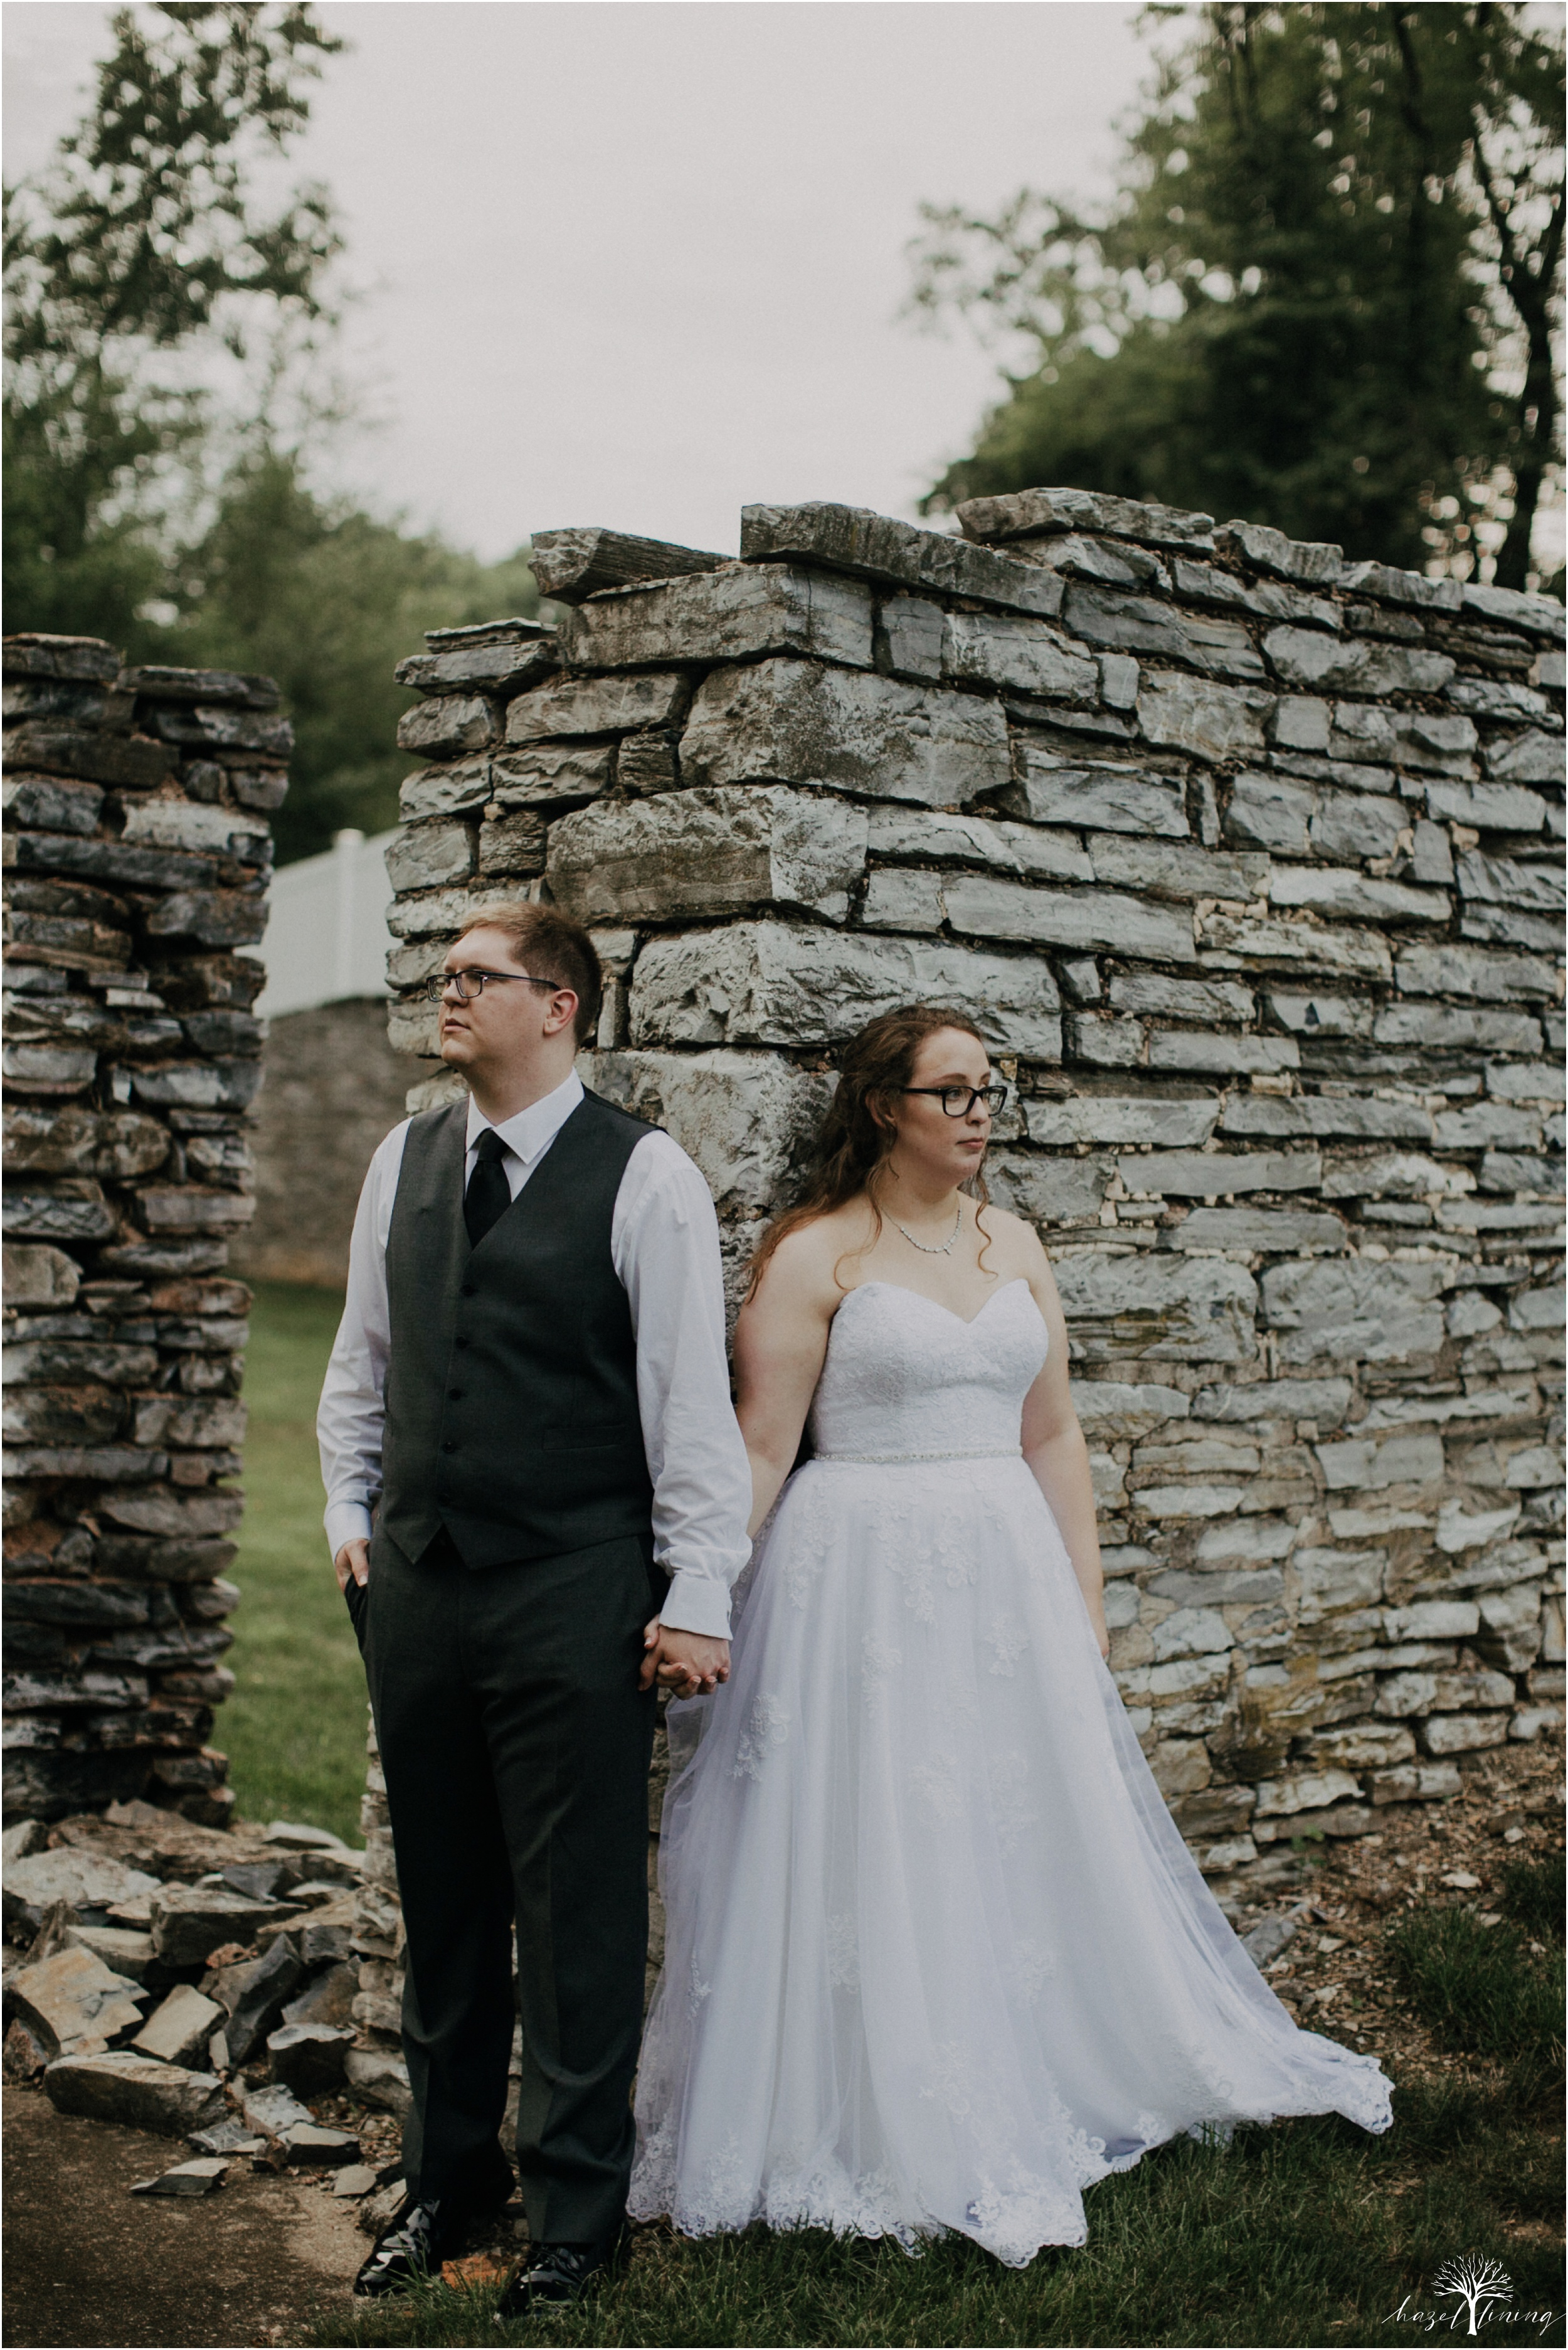 laura-zach-mccaskill-harmony-hall-lebanon-valley-college-summer-wedding-hazel-lining-photography-destination-elopement-wedding-engagement-photography_0152.jpg